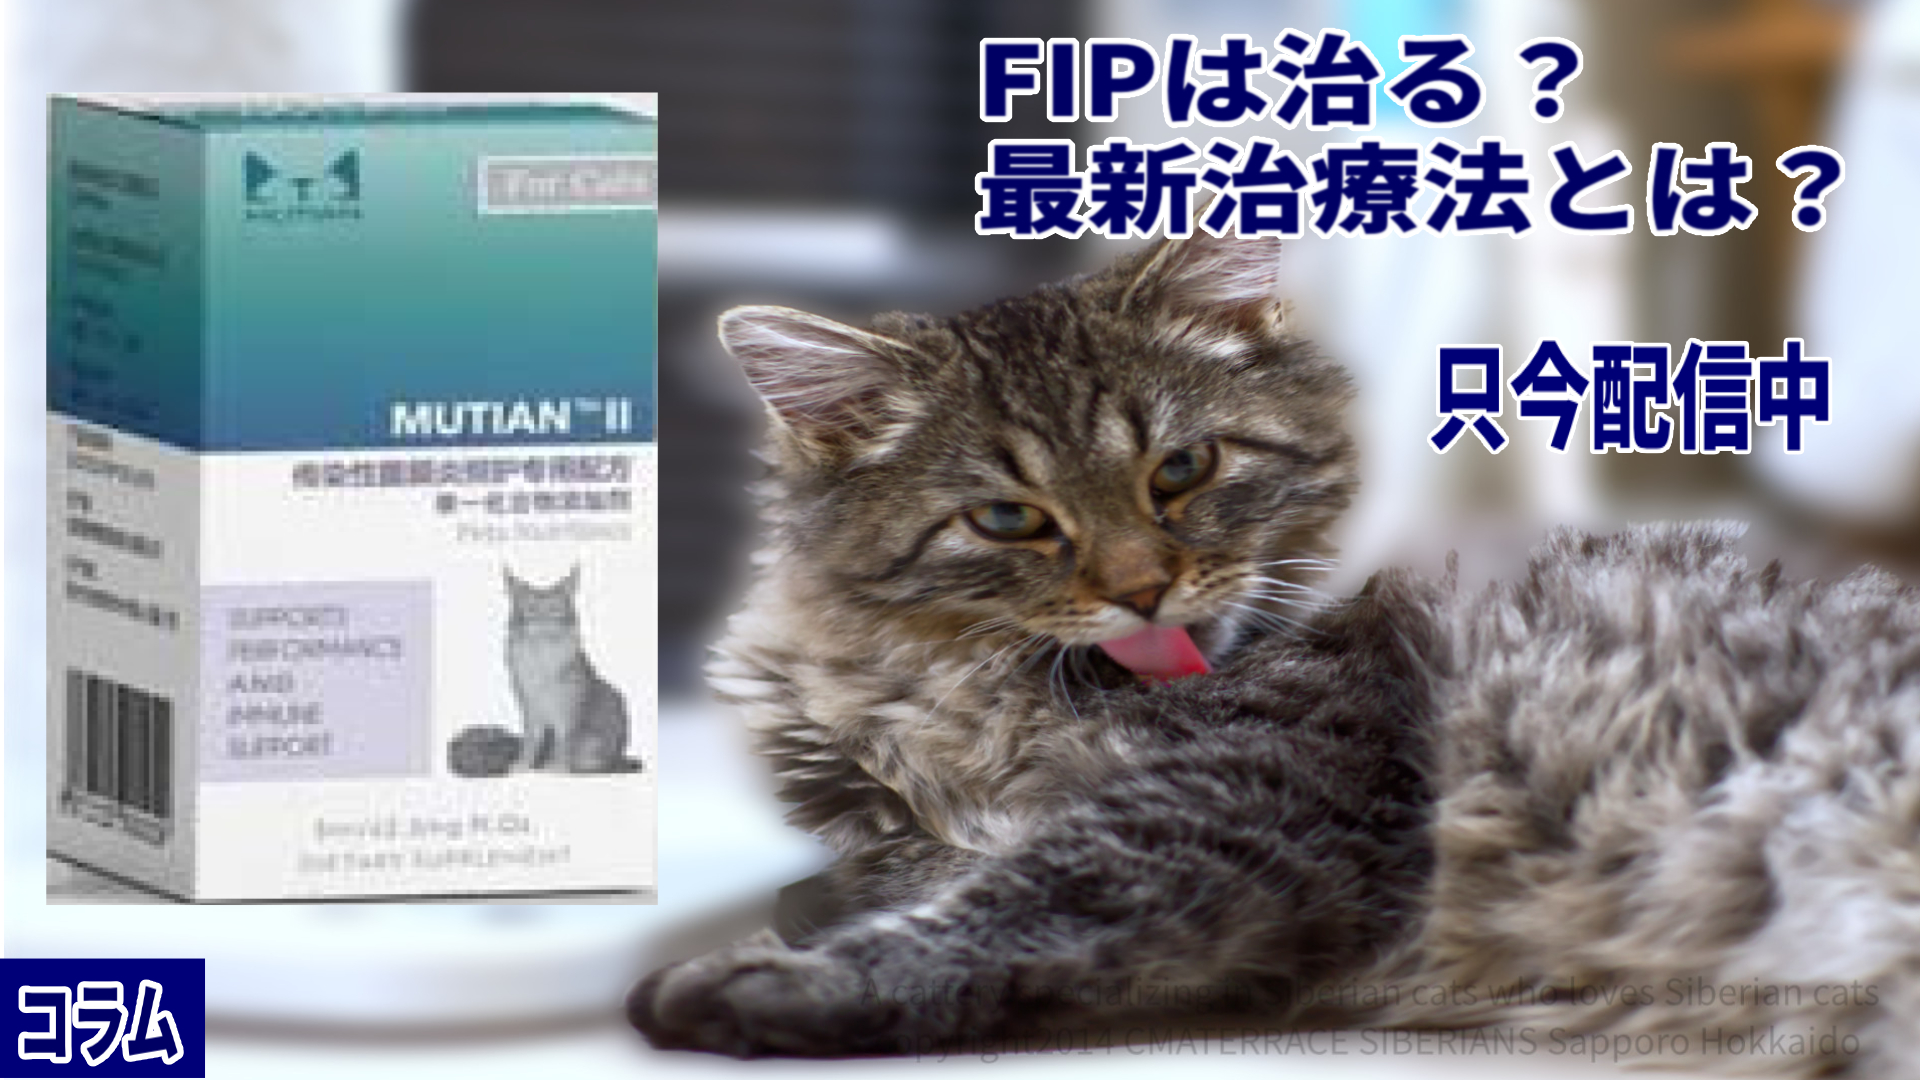 FIPは治る?最新治療法とは?